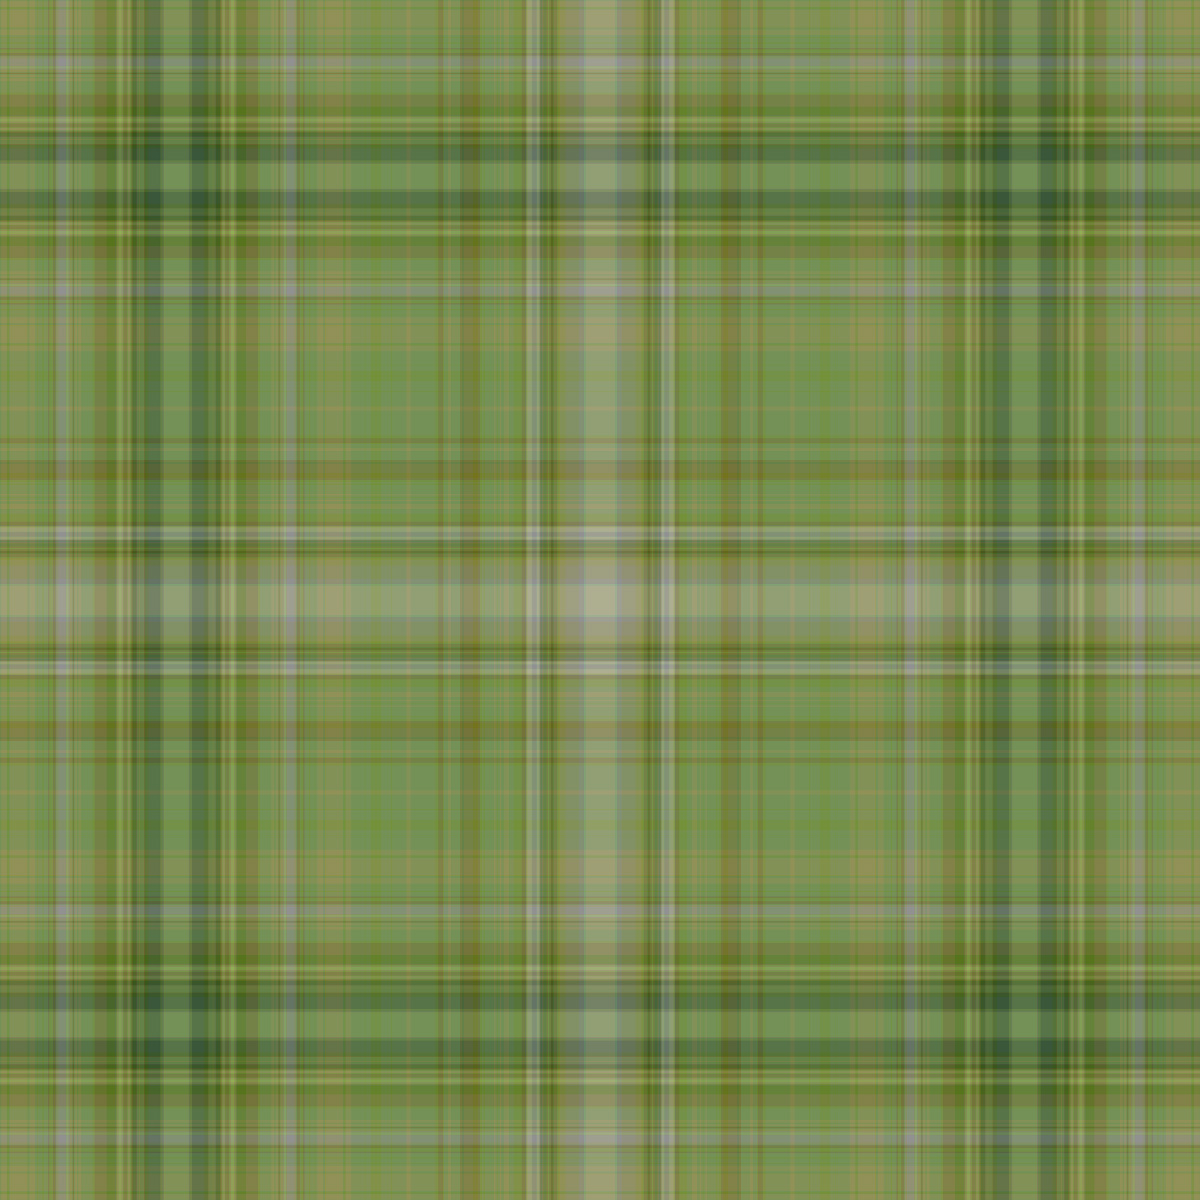 Green schotten muster background texture, free picture